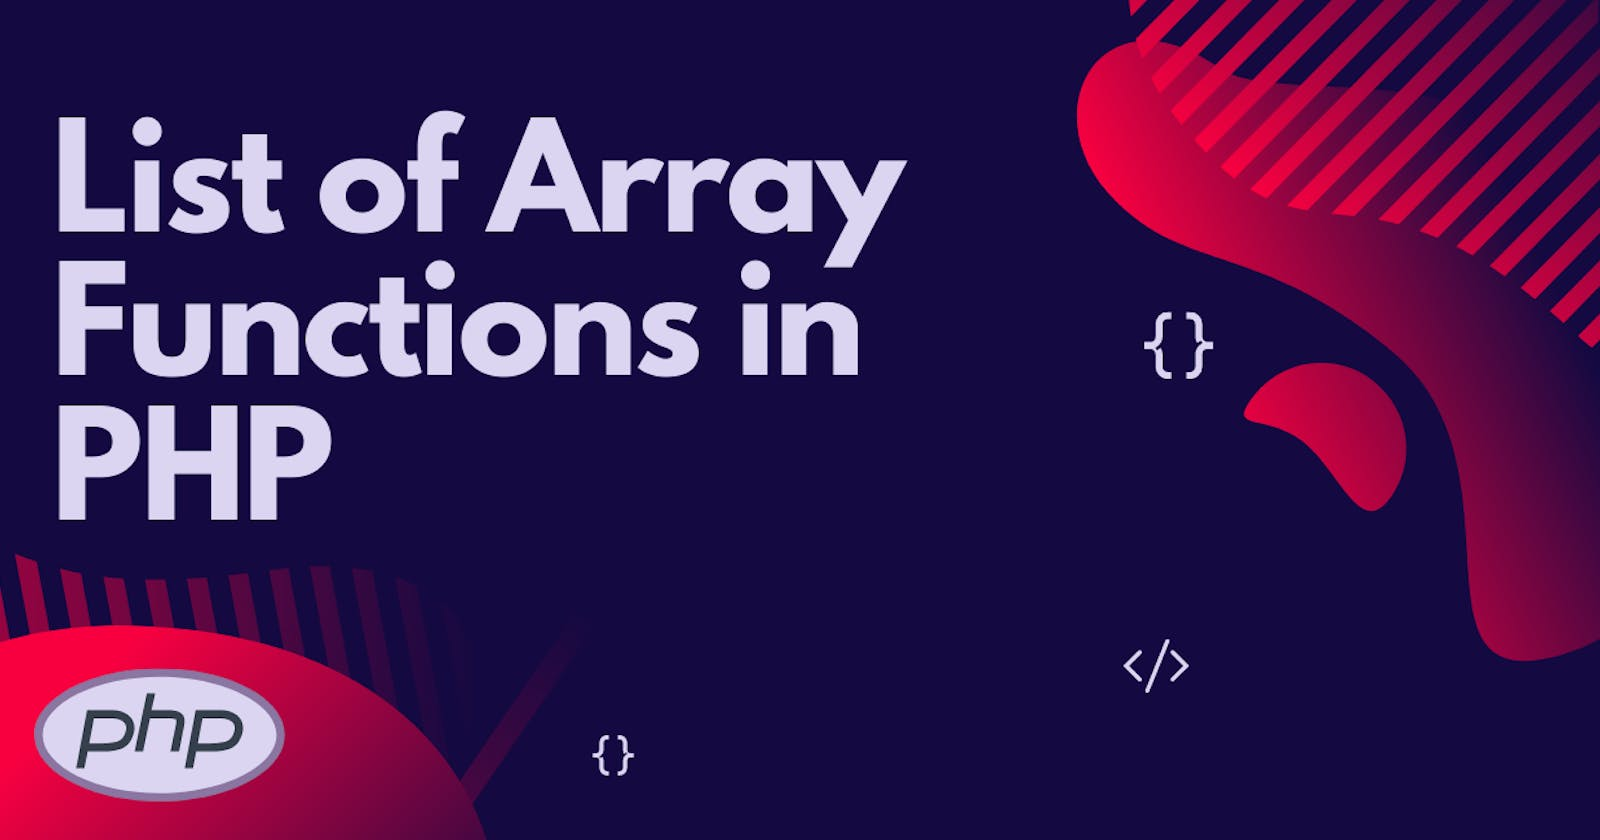 List of Array Functions in PHP